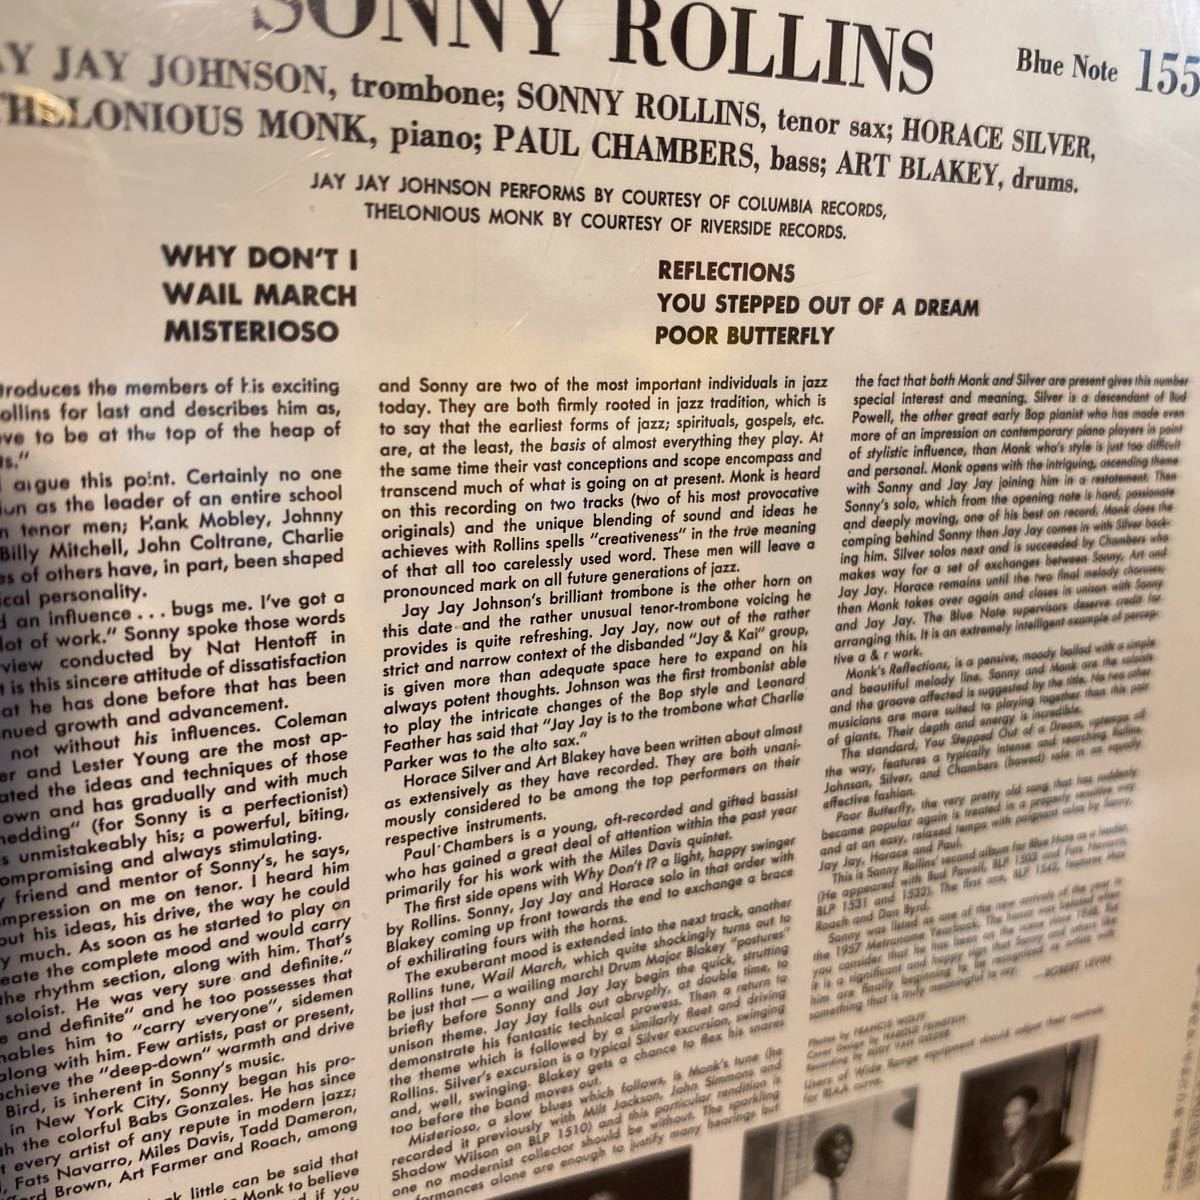 SONNY ROLLINS . vol.2 . BLUE NOTE 1558 輸入盤 _画像7